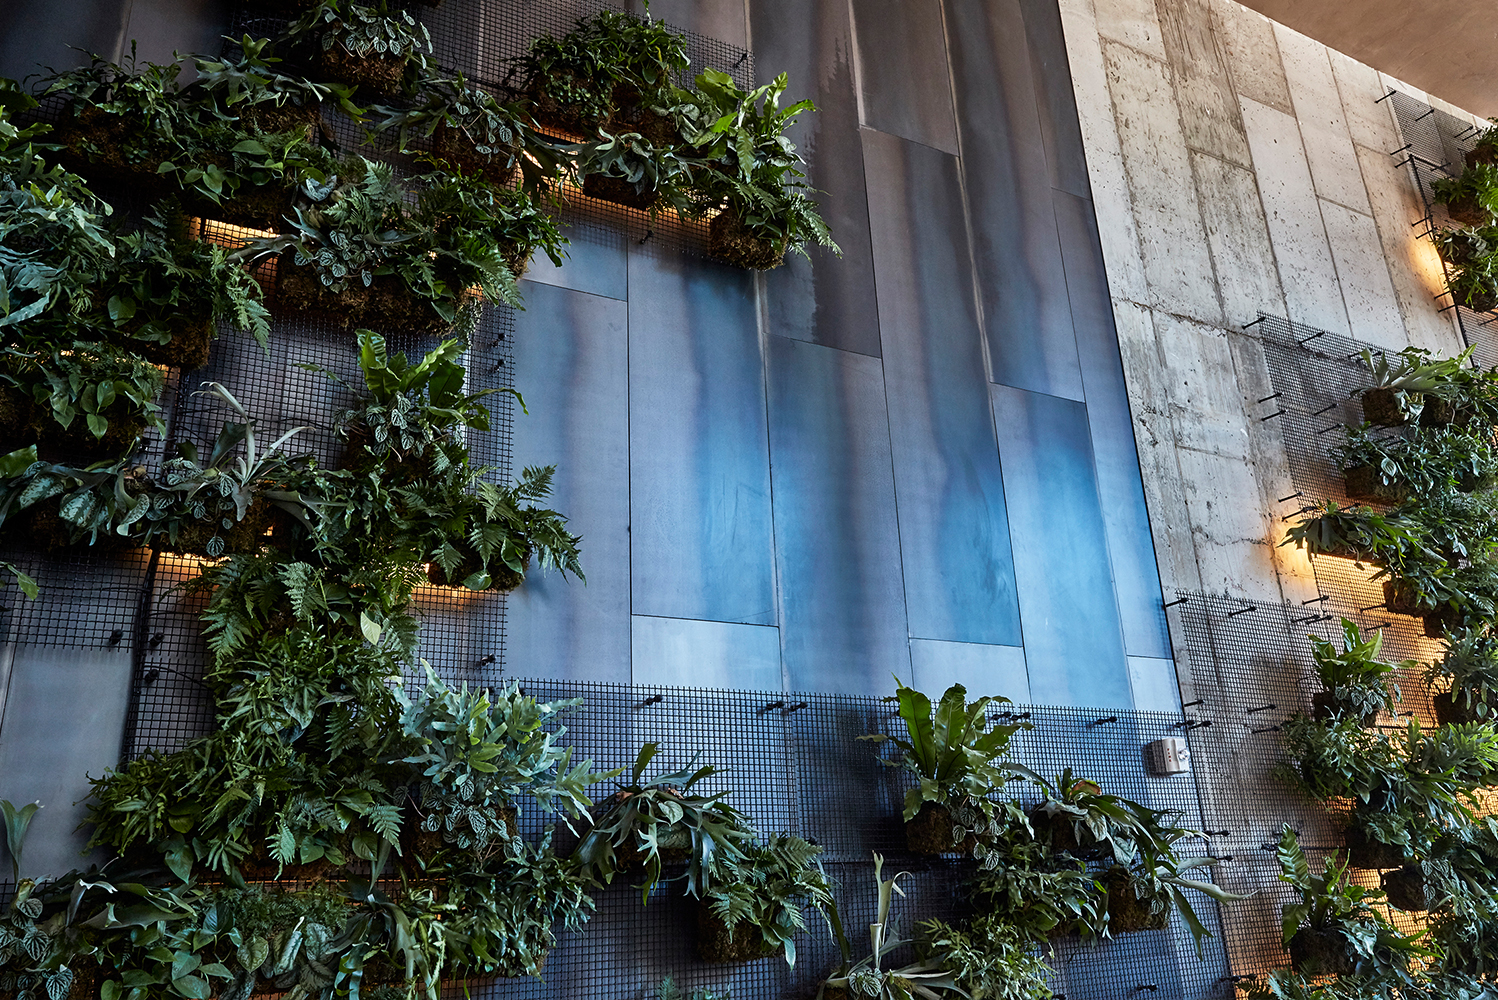 The vertical wall blends industrial elements with natural eslement against a backdrop of concrete and steel.